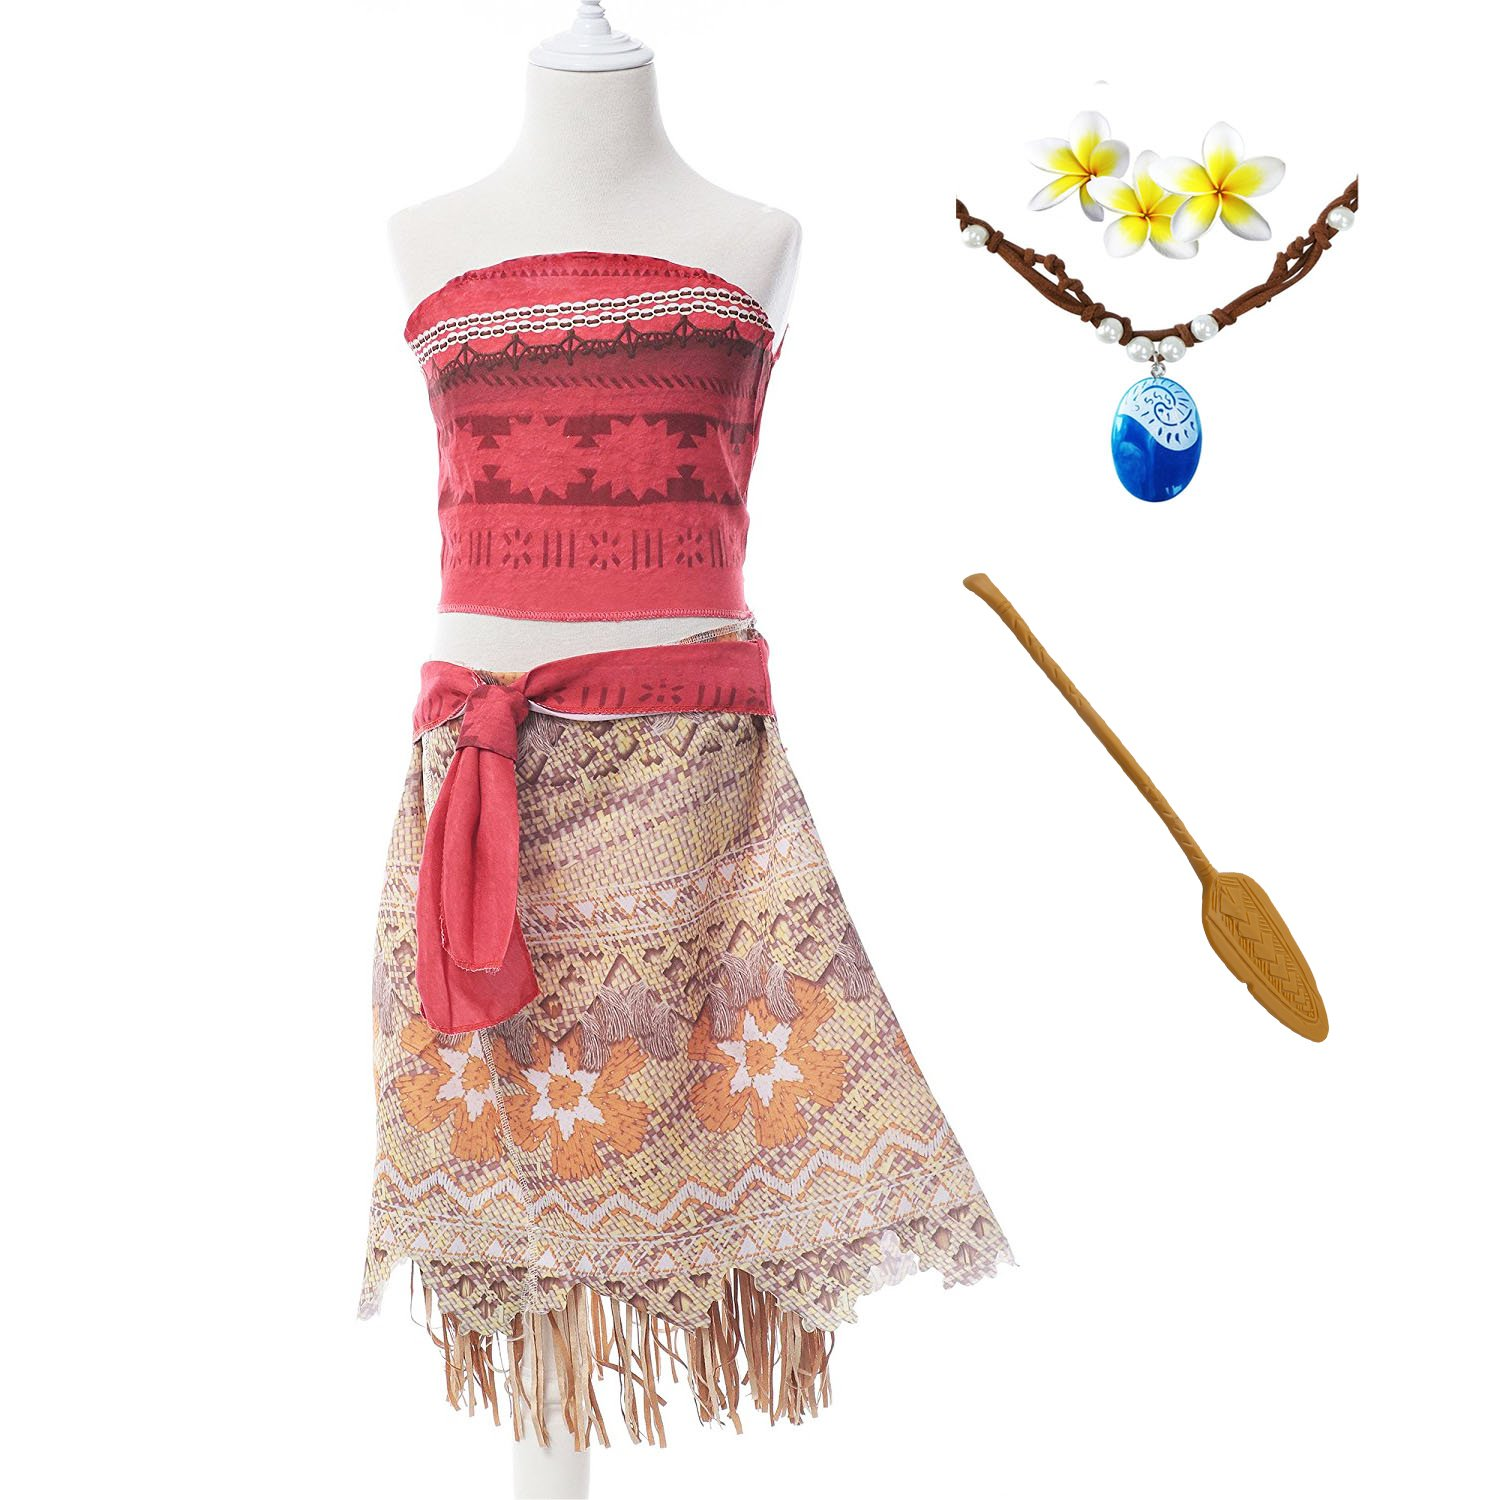 Moana Girls Adventure Outfit Cosplay Costume Skirt Set with Necklace&flower (4.27FT)